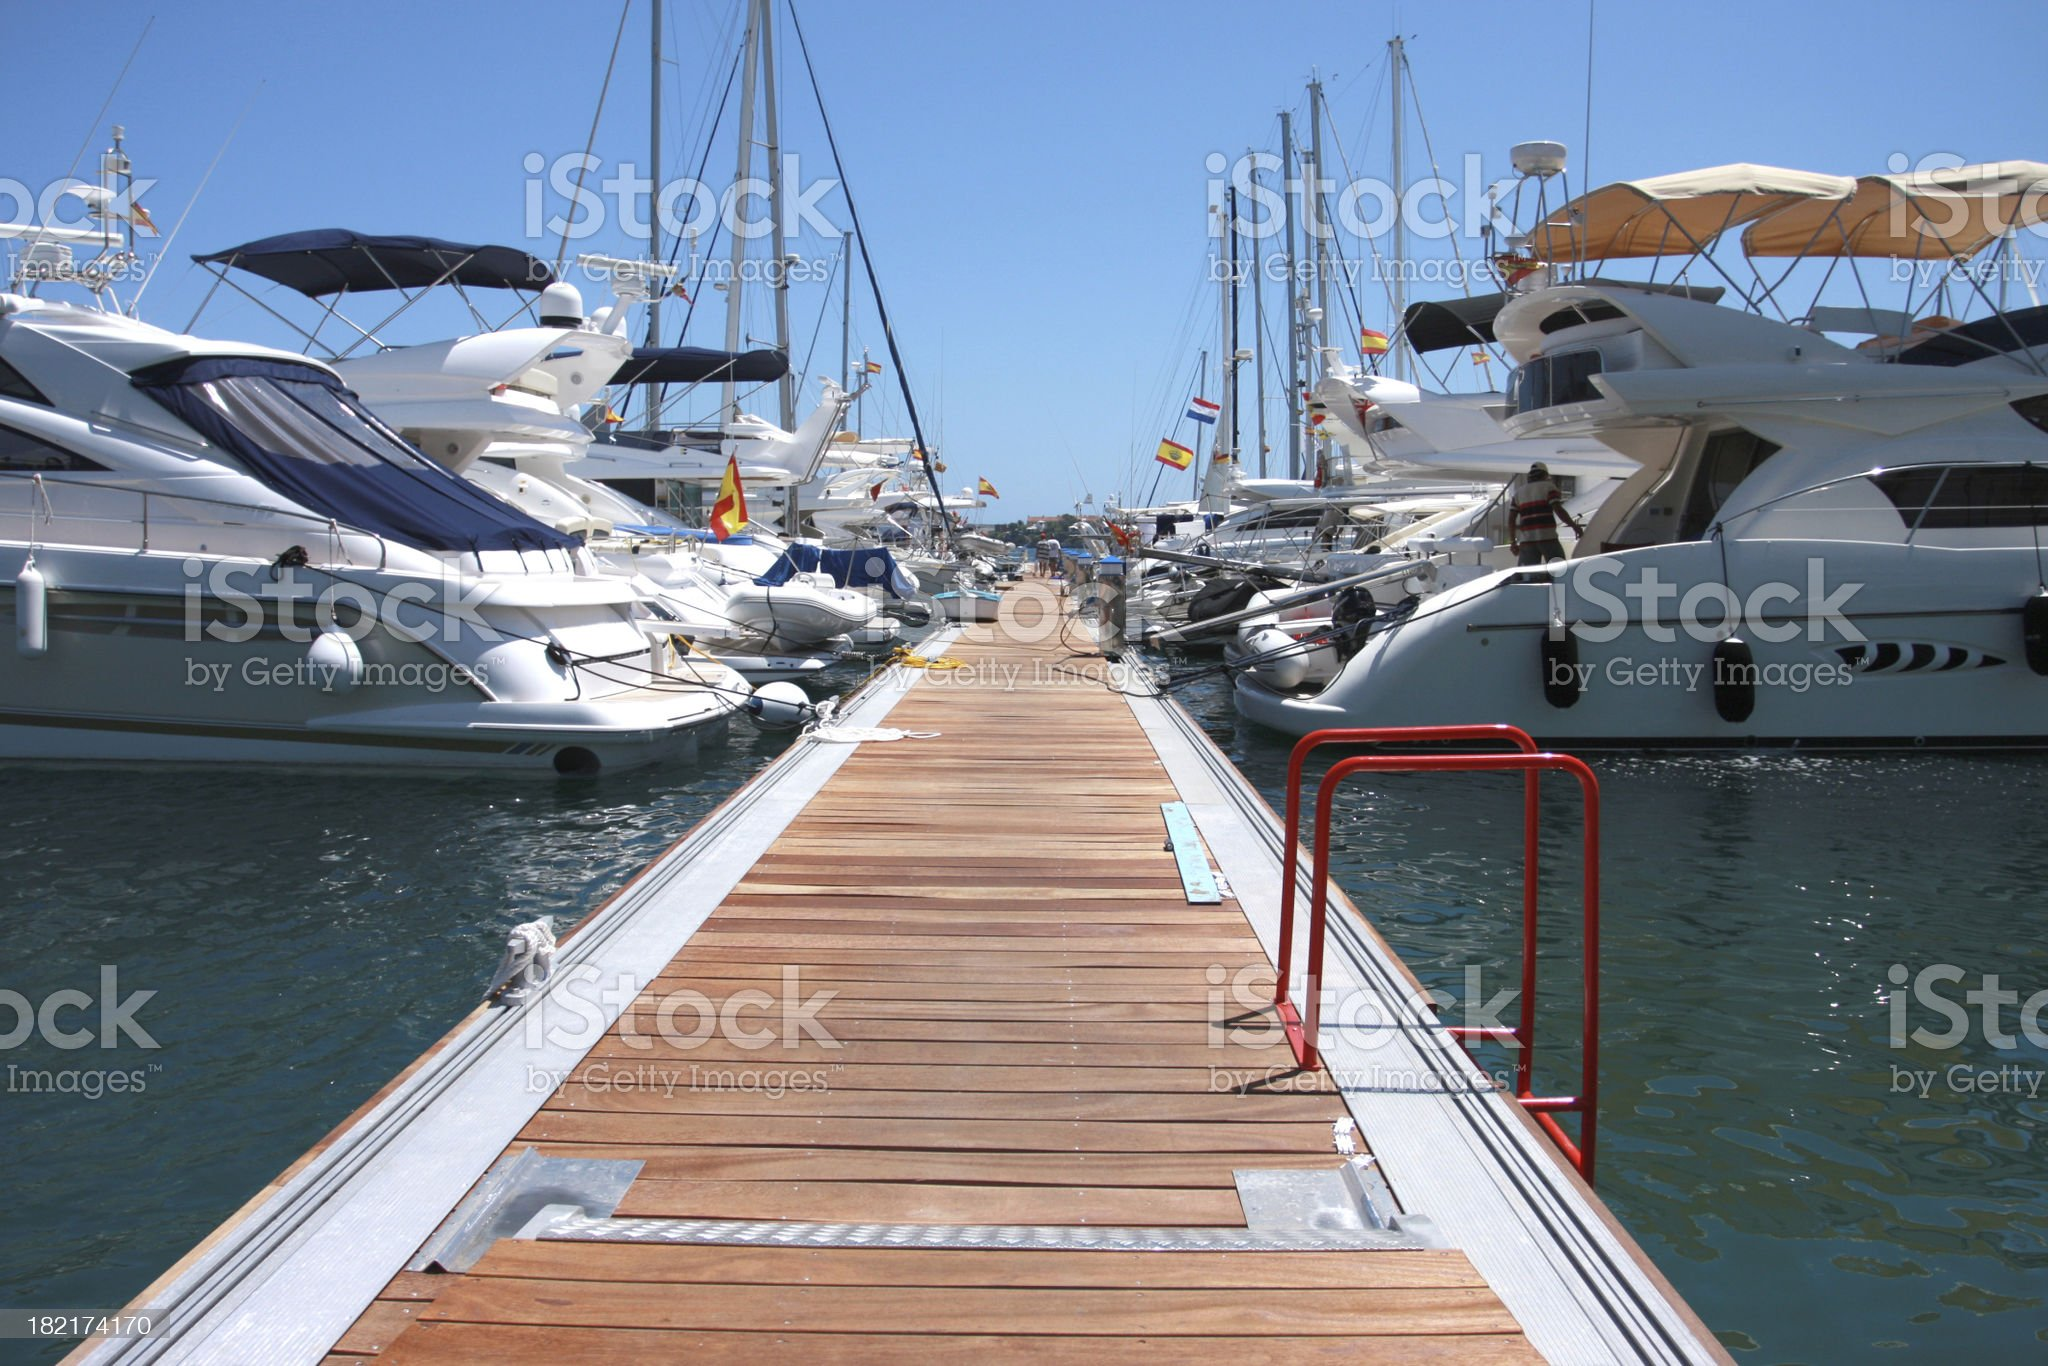 A dock for private yachts and boats royalty-free stock photo